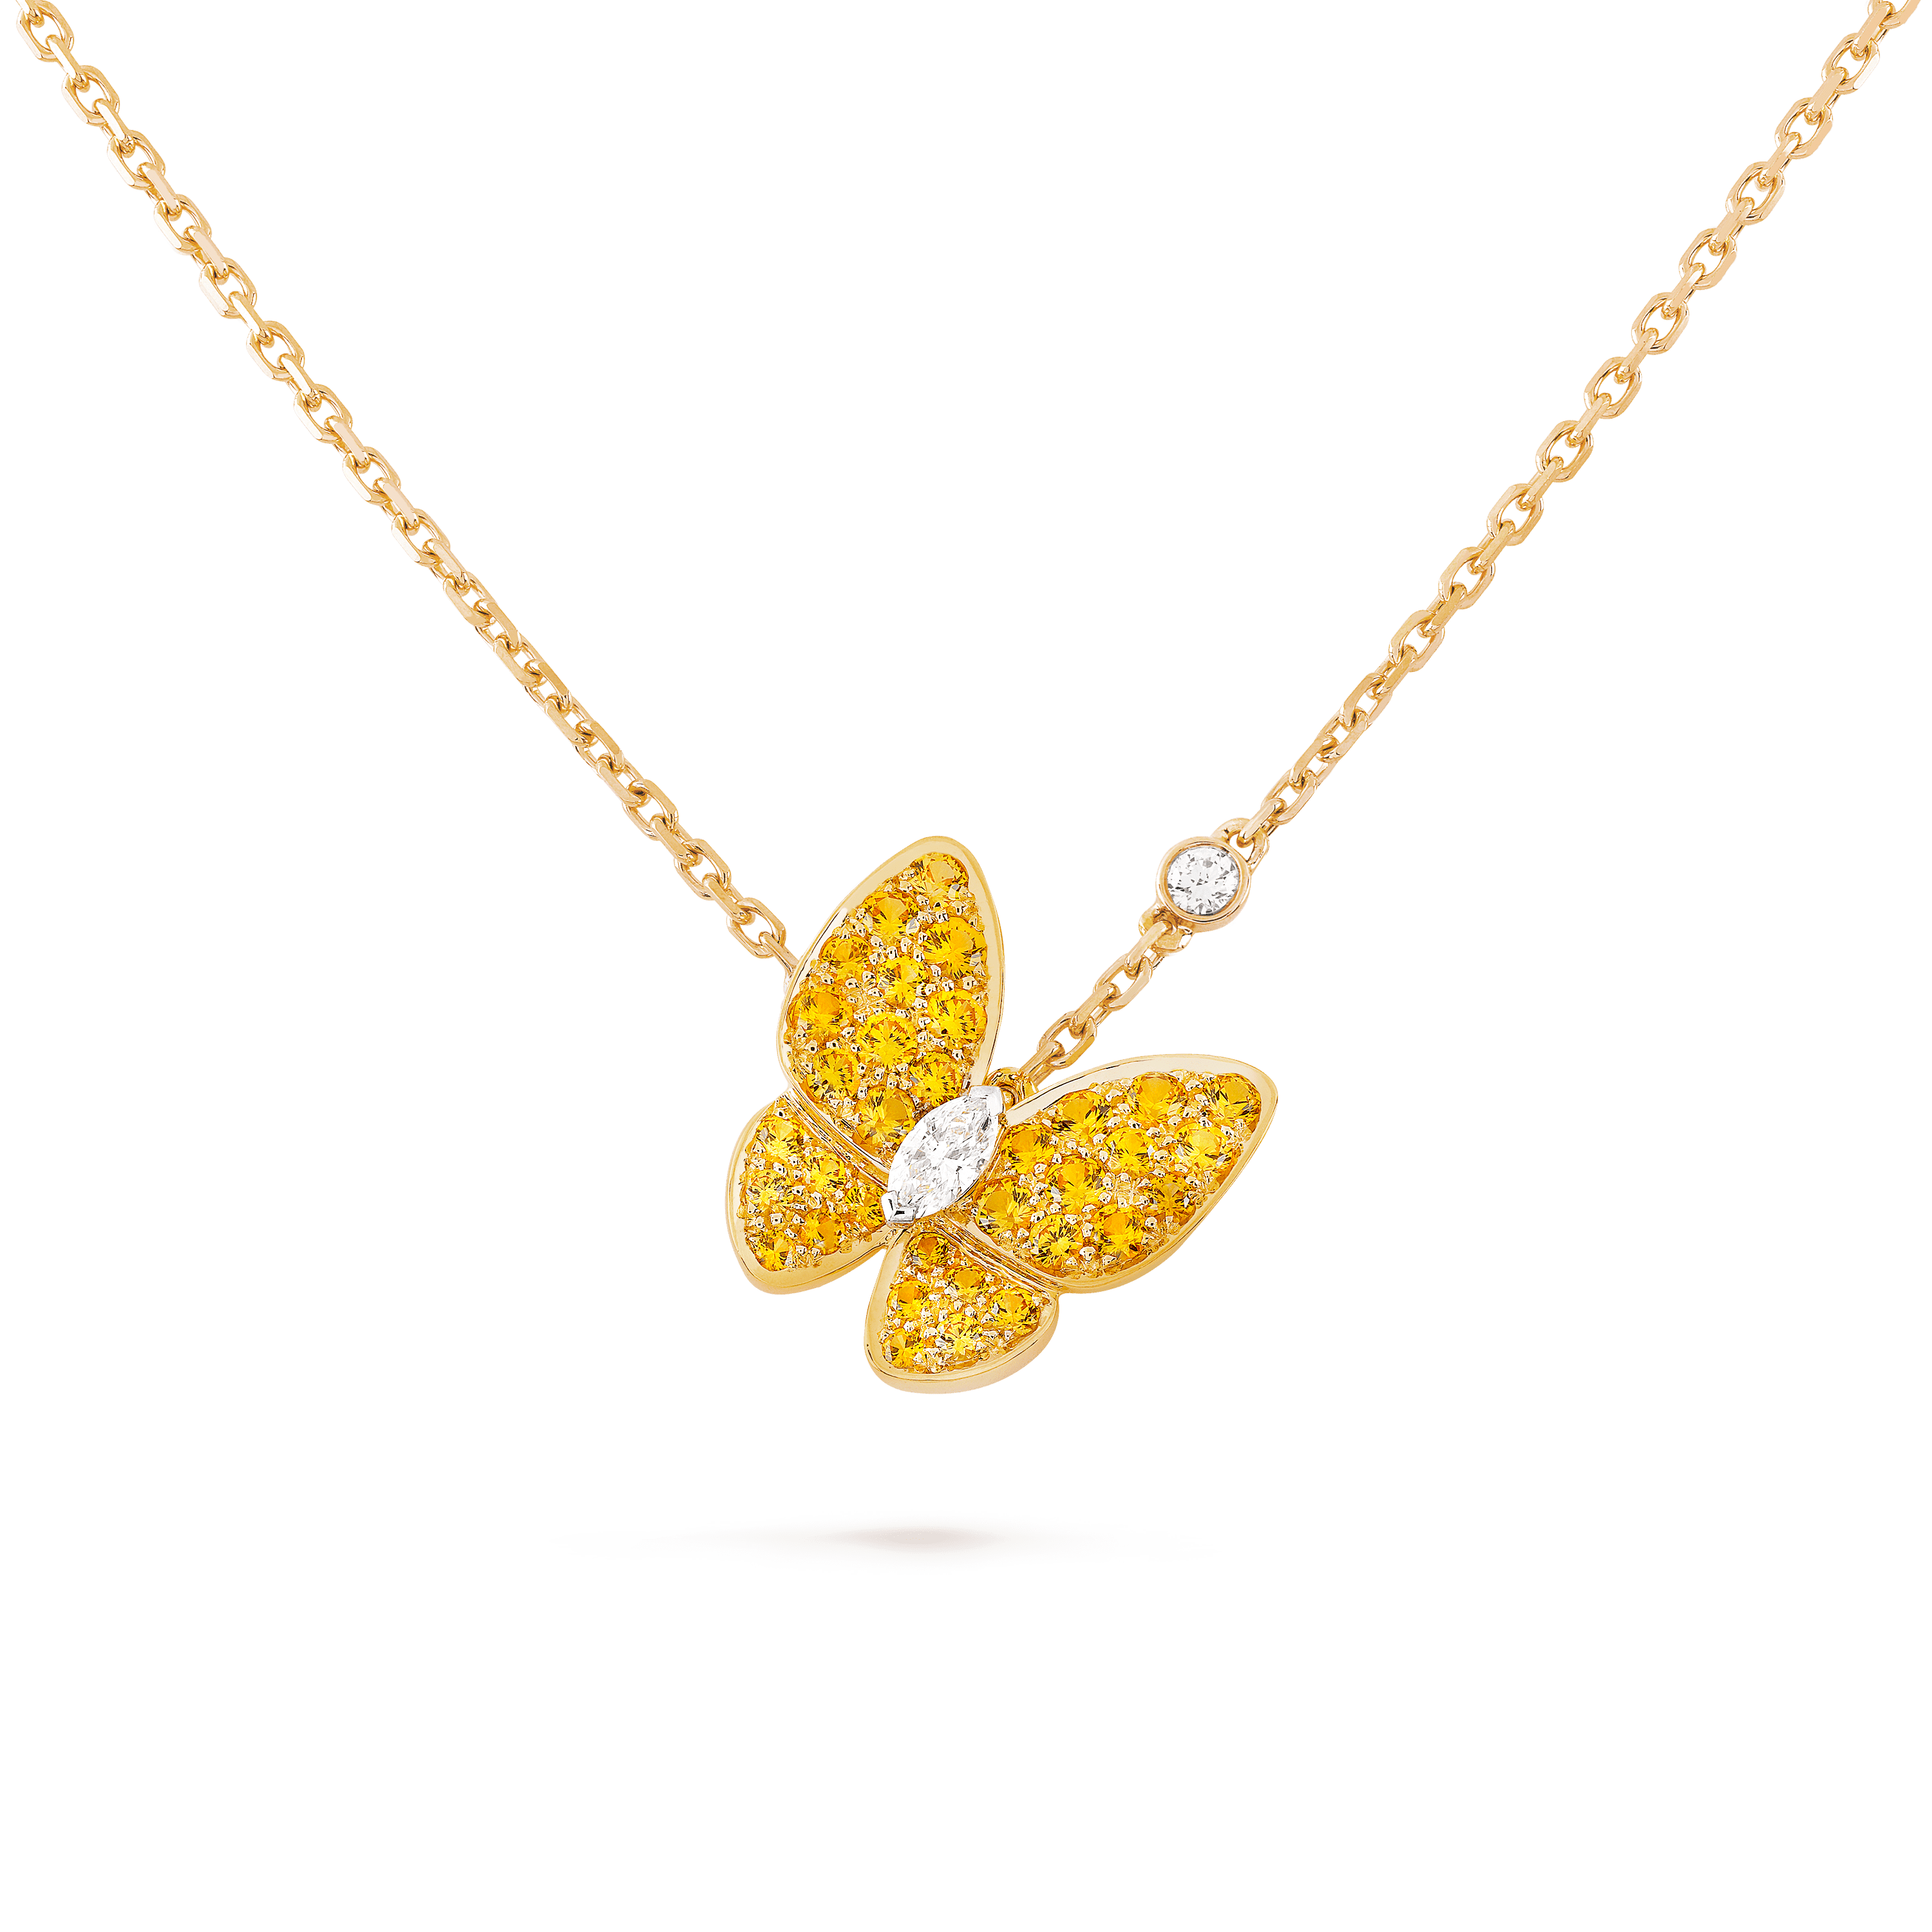 Pingente Two Butterfly, - Detail View - VCARO3M300 - Van Cleef & Arpels